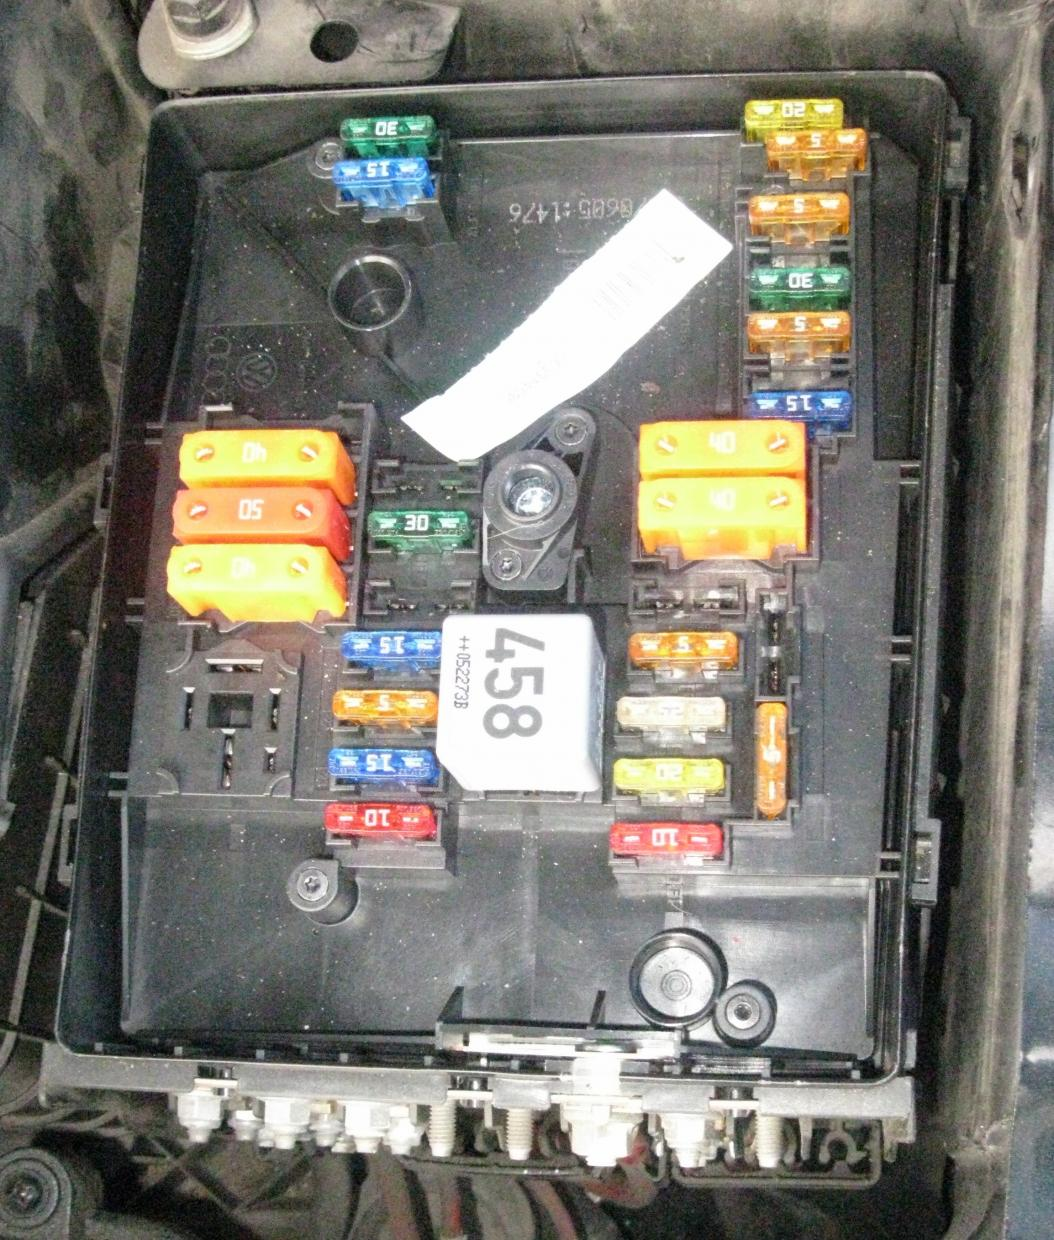 golf 5 2 0 fsi fuse box b vw gti forum vw rabbit forum vw attached images